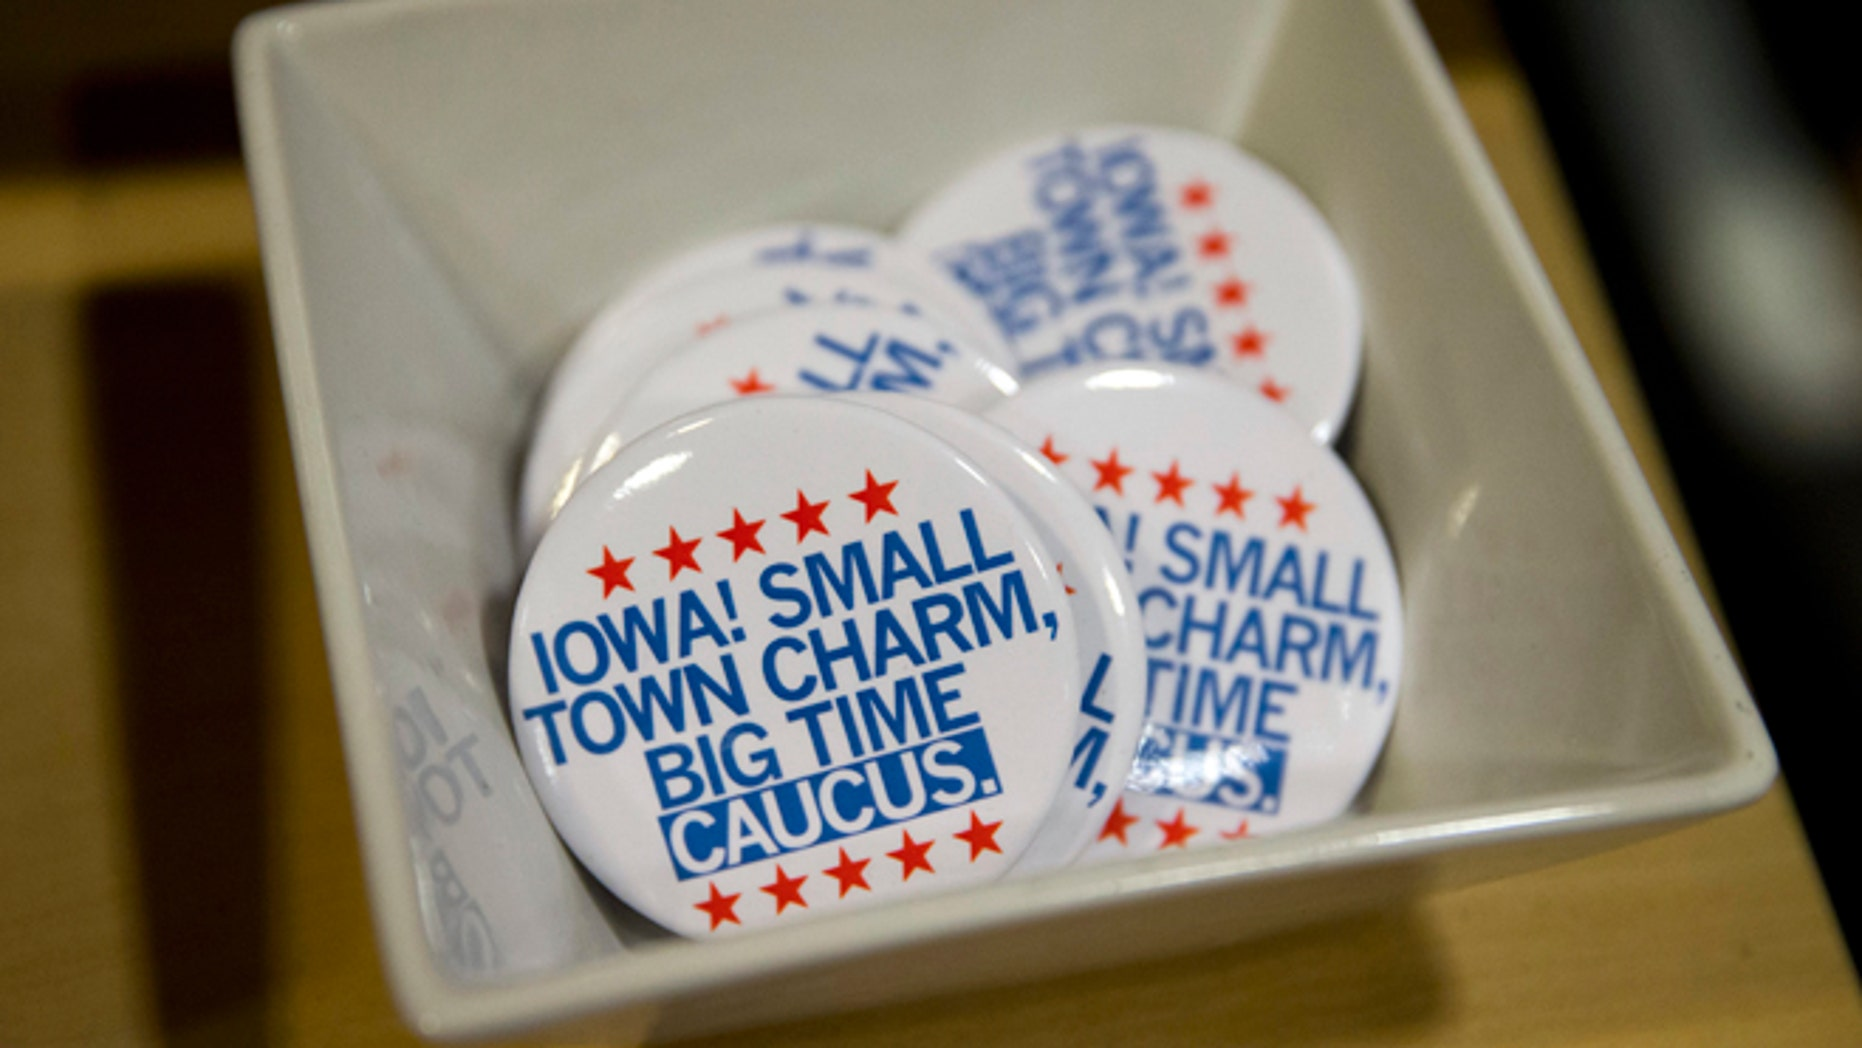 In this Jan. 21, 2016, photo, political buttons are for sale at a gift shop in Des Moines, Iowa.  For some Americans, the promise of political change and disruption has come too slowly, or failed altogether. On the eve of the first voting contest in the 2016 presidential election, these voters are pushing for bolder, more uncompromising action, with an intensity that has shaken both the Republican and Democratic establishment. (AP Photo/Jae C. Hong)